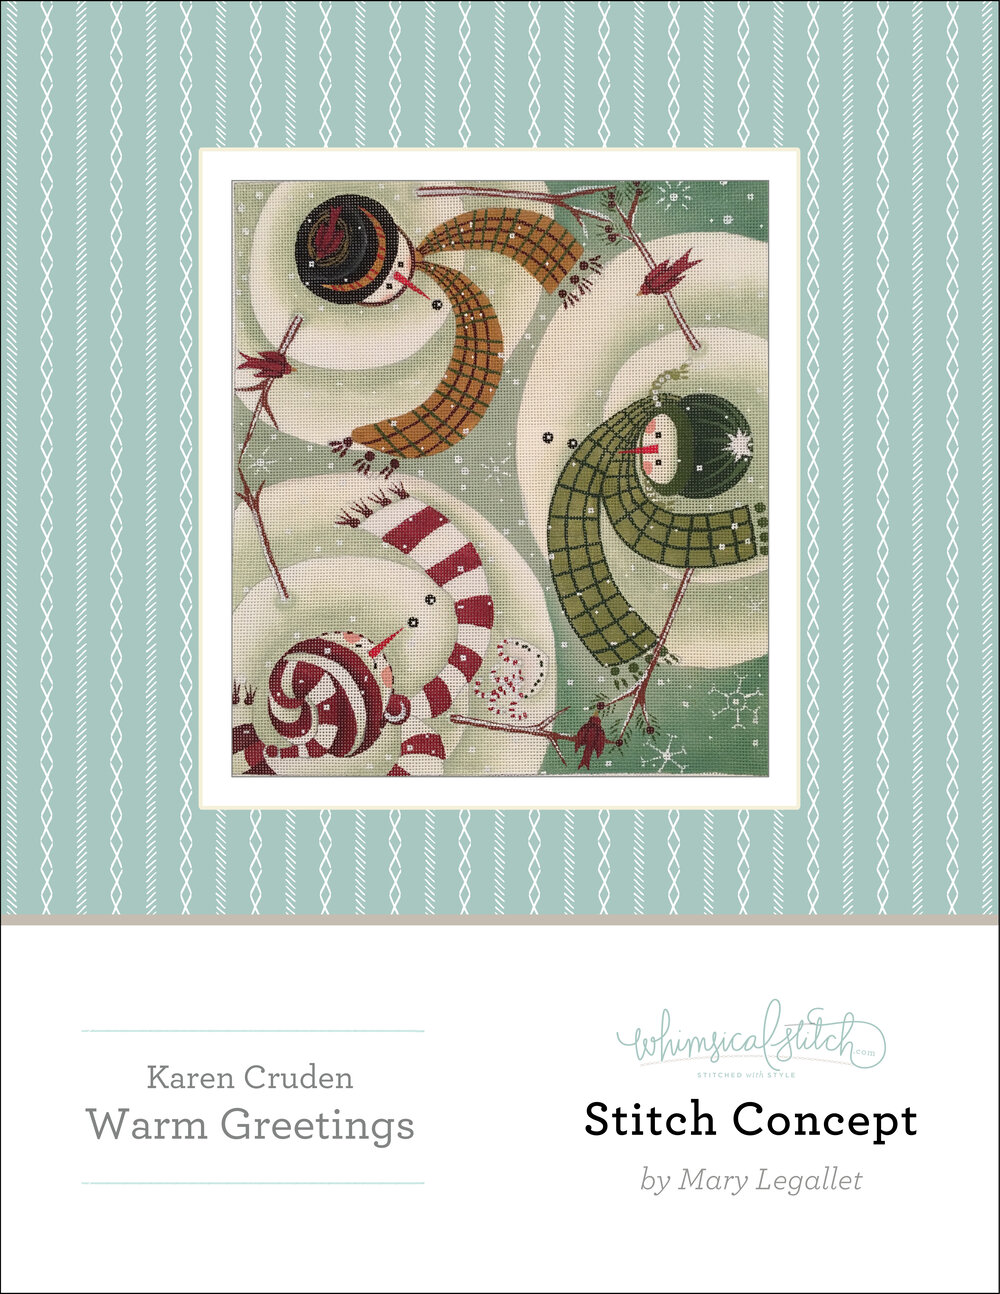 WS-SC-027 Cover with Edge.jpg